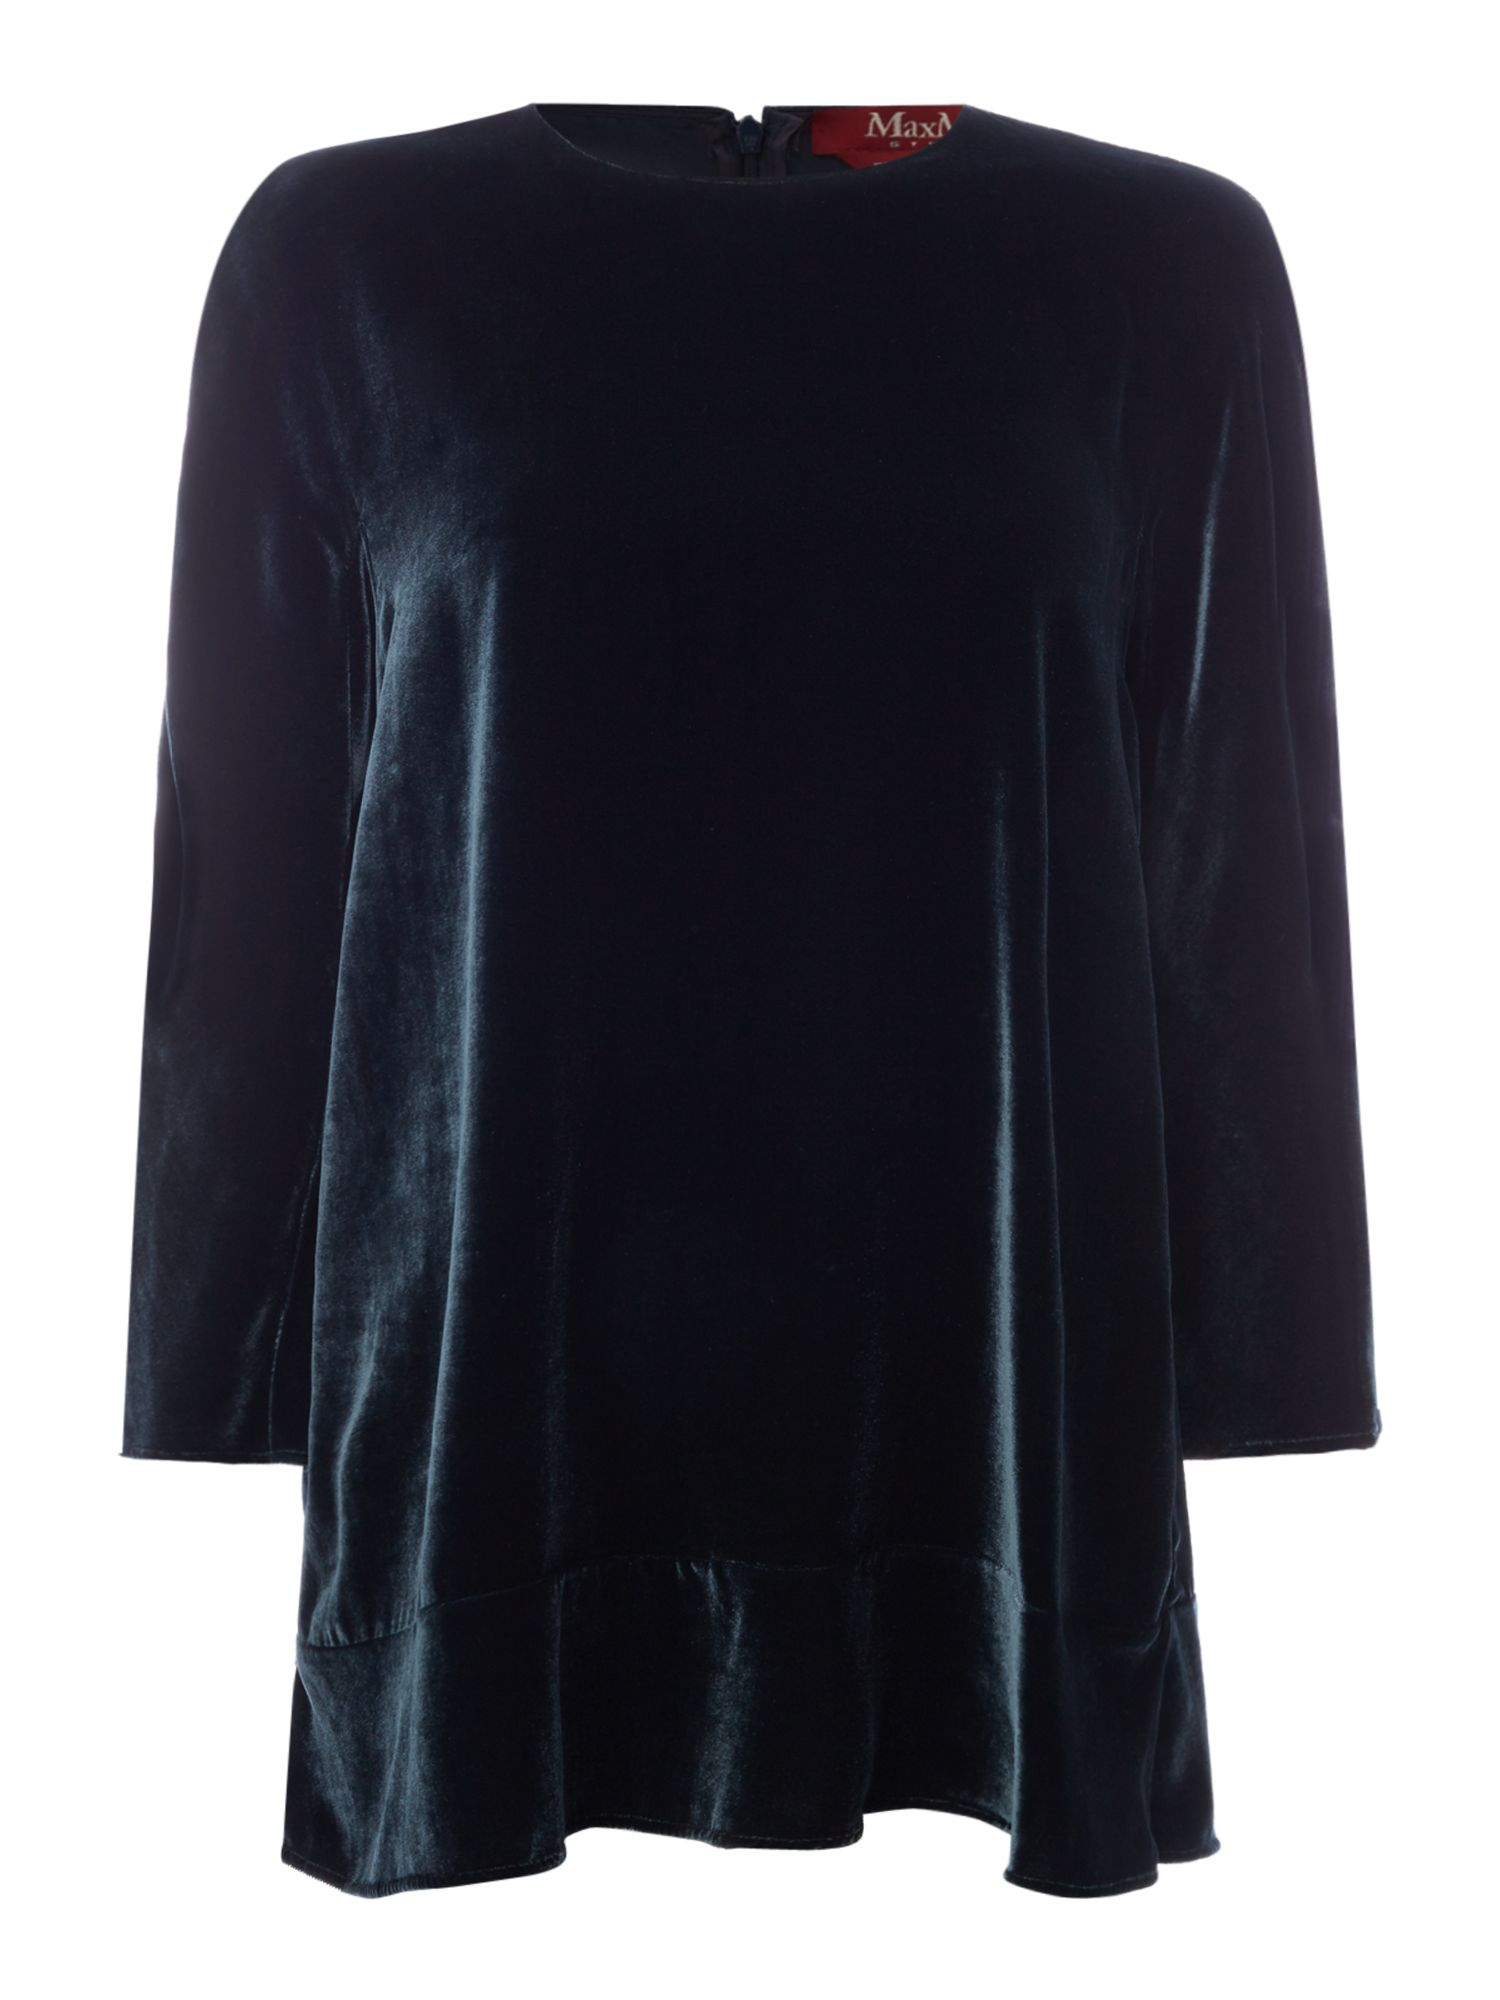 Max Mara Studio Vello velvet top, Dark Green